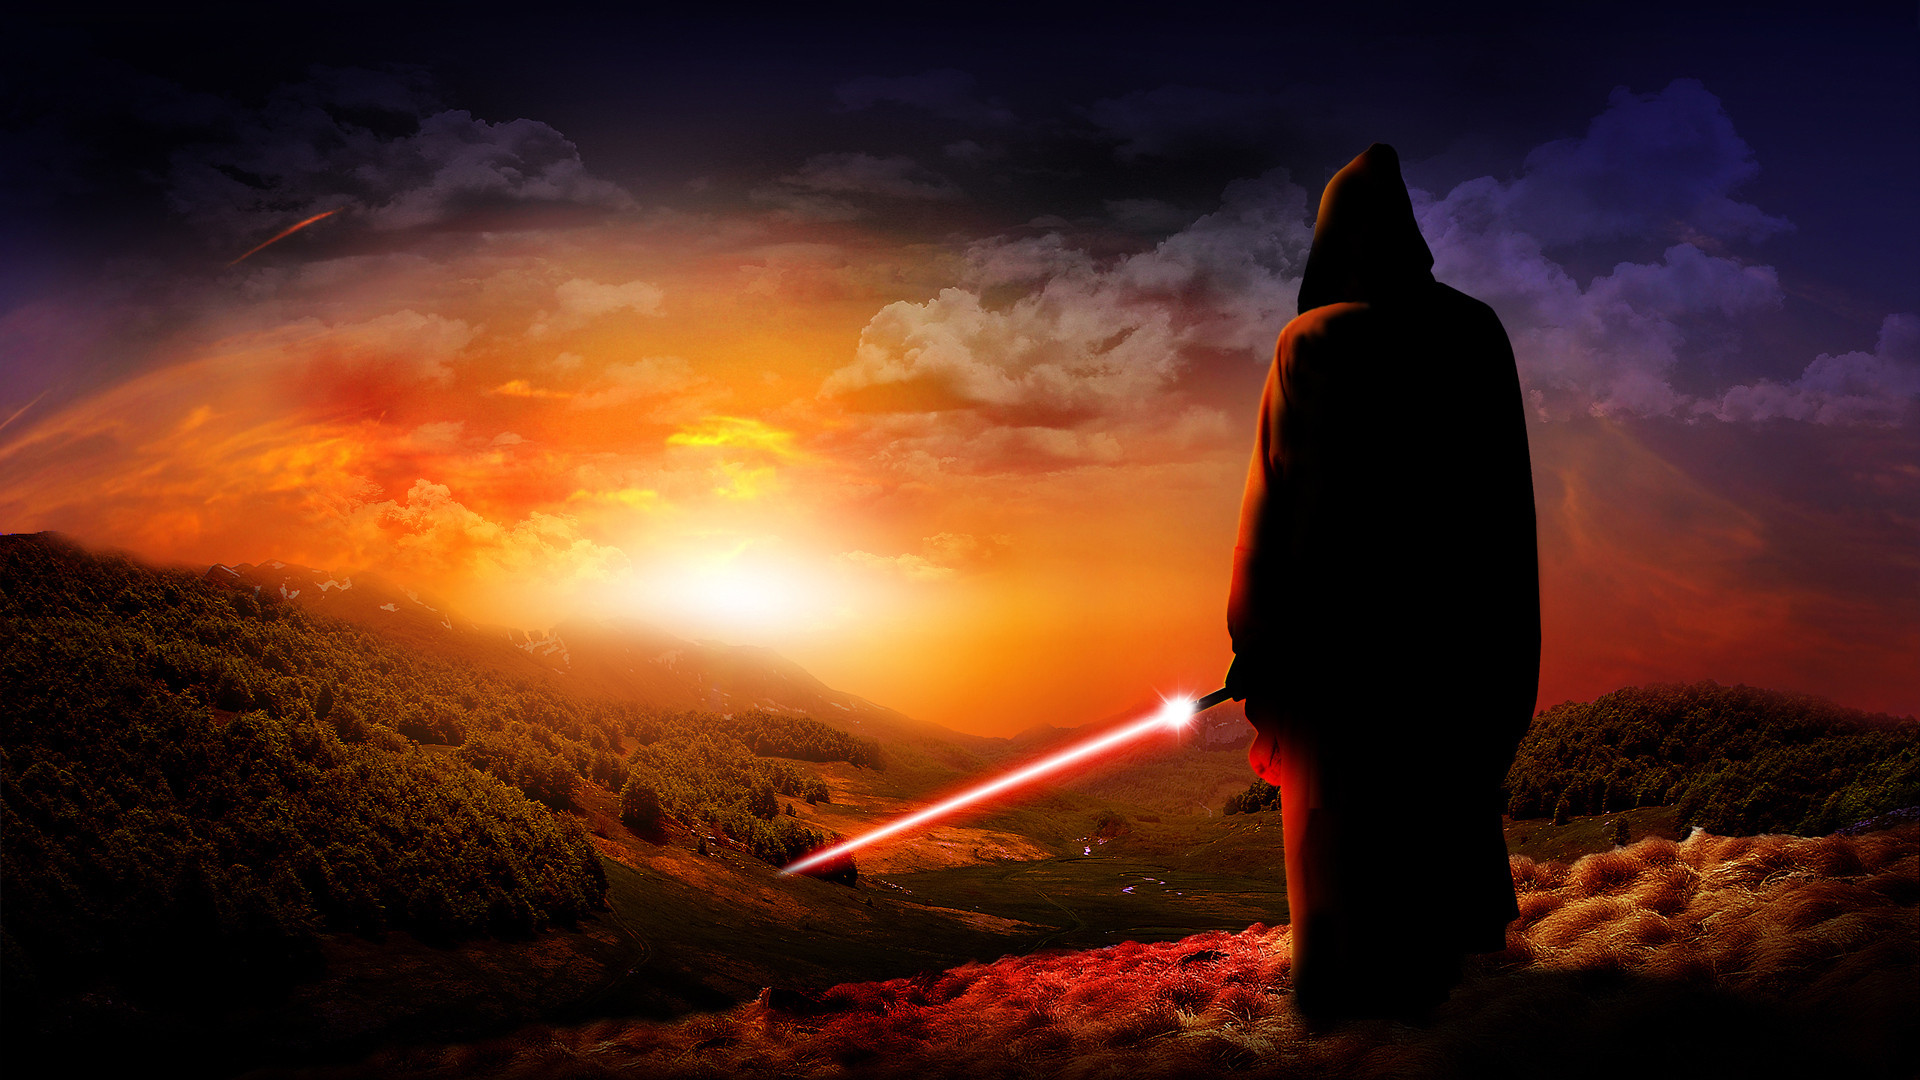 1920x1080 Black Background Dark Background Jedi Lightsabers Sith Star Wars free  iPhone or Android Full HD wallpaper.